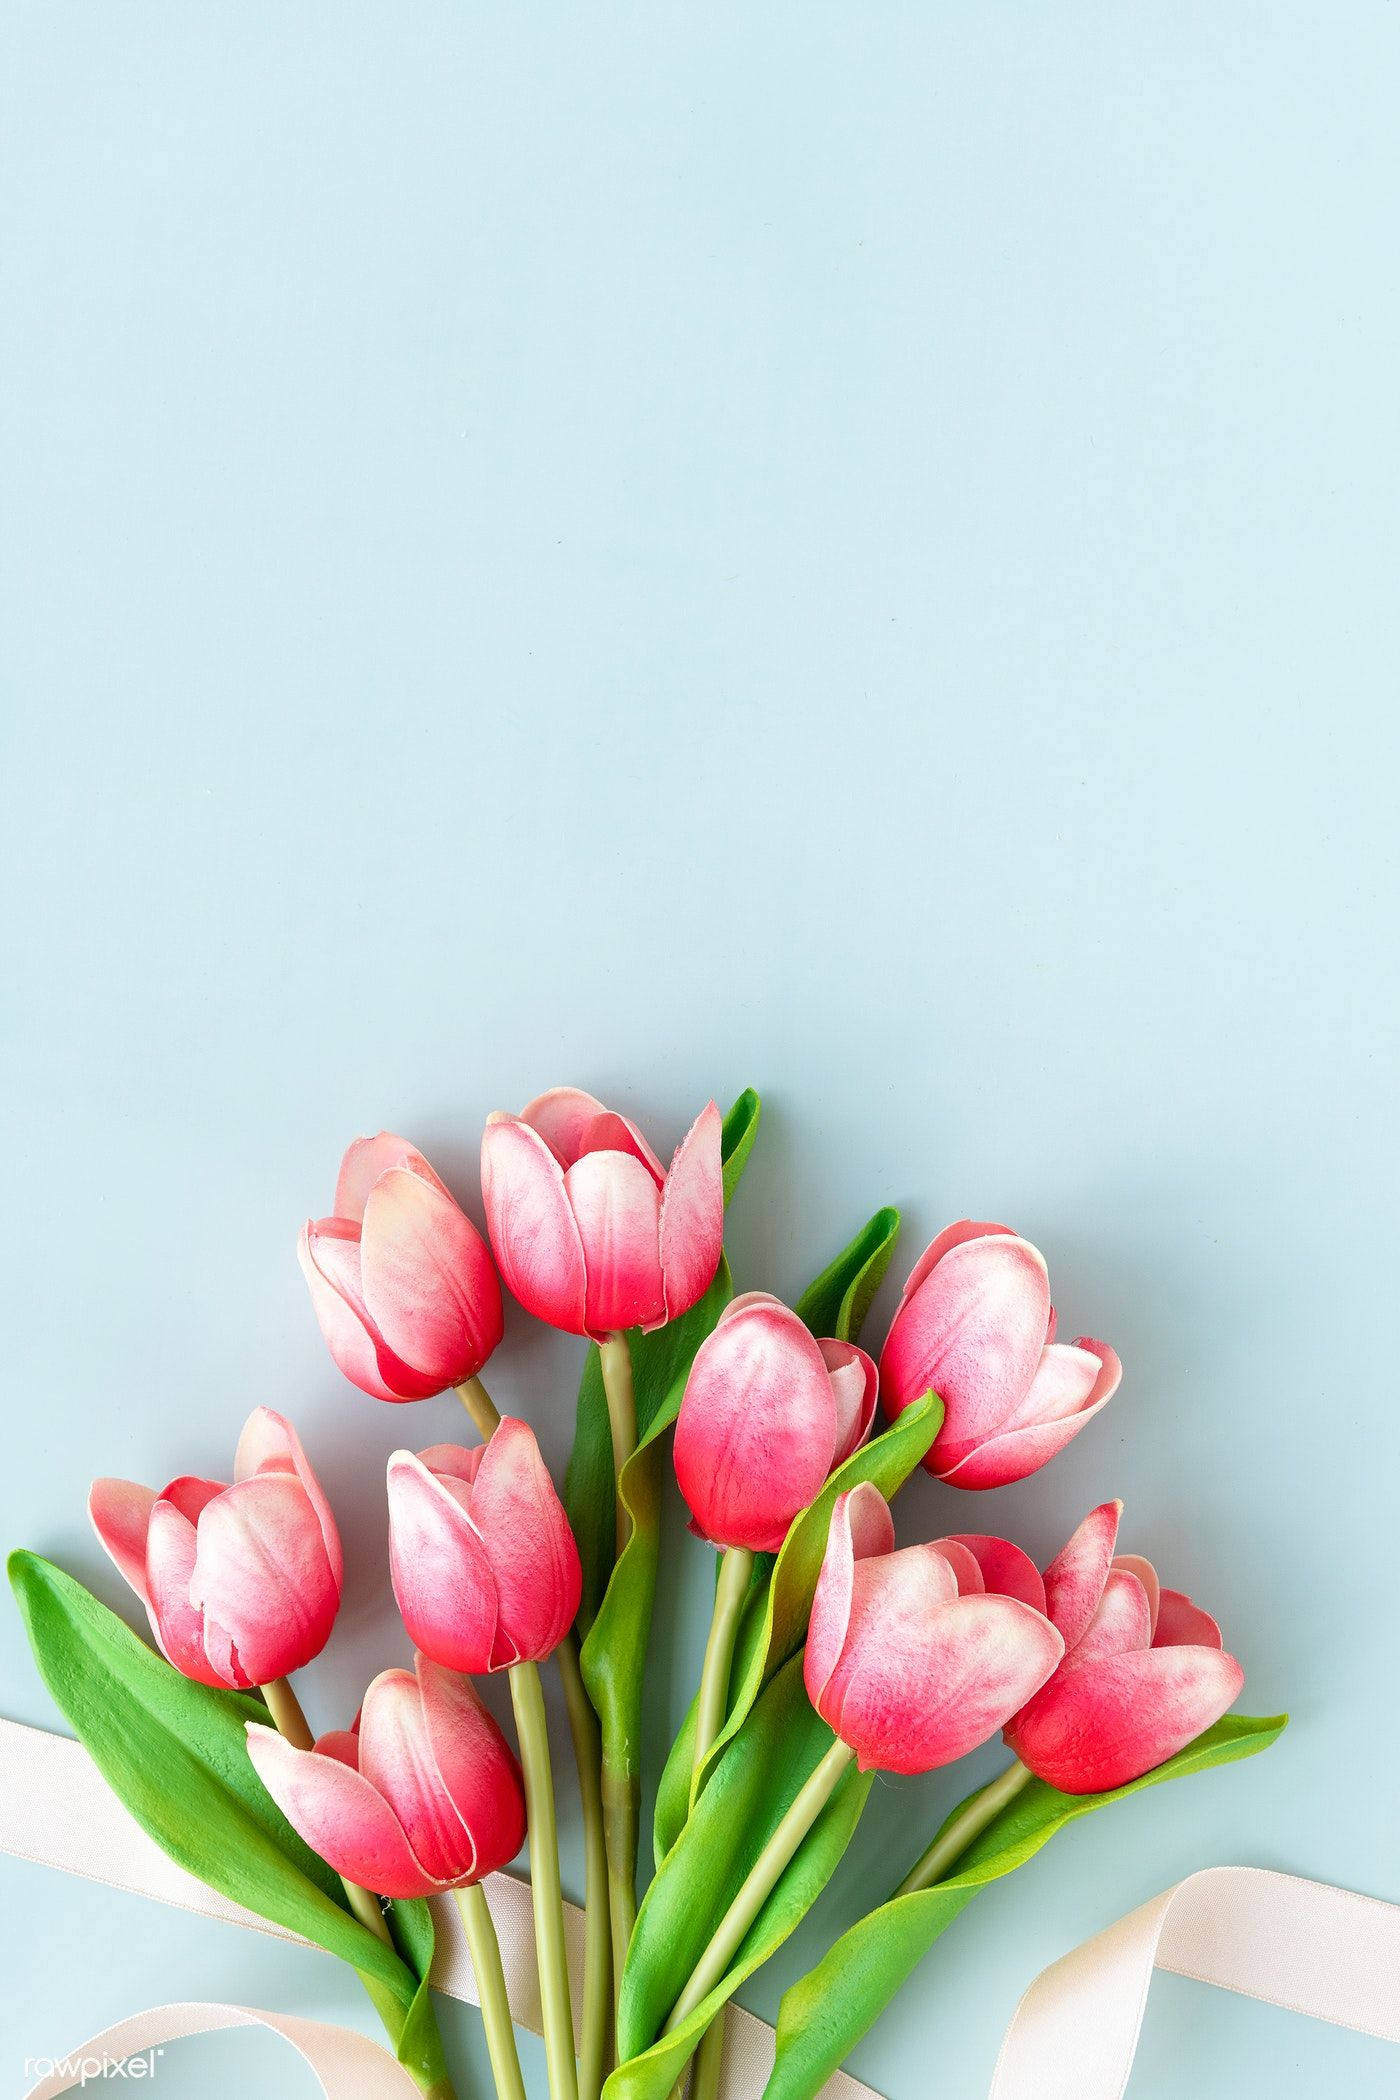 Download Premium Image Of Red And White Tulip On Blank Blue Background White Tulips Flower Background Wallpaper Flower Background Iphone